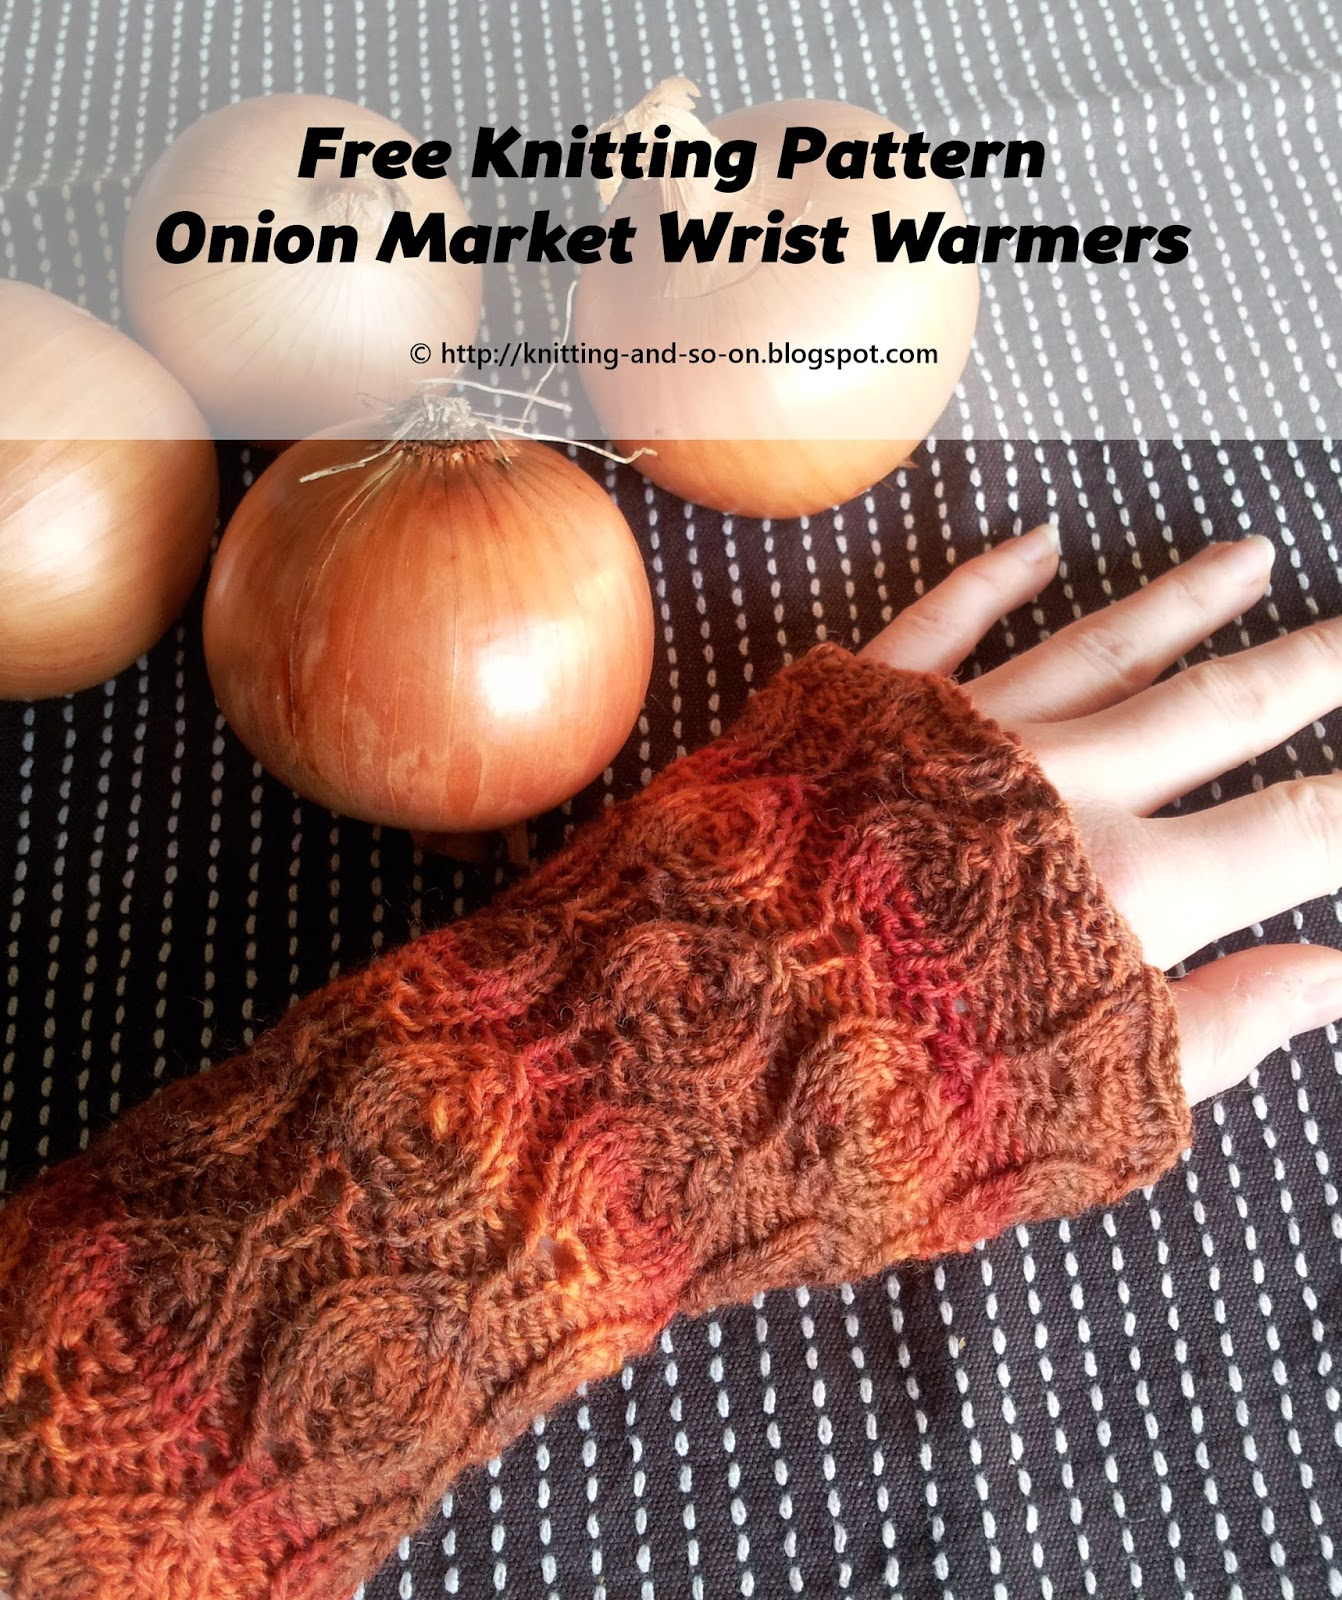 Free Knitting Pattern: Onion Market Wrist Warmers; http://knitting-and-so-on.blogspot.com